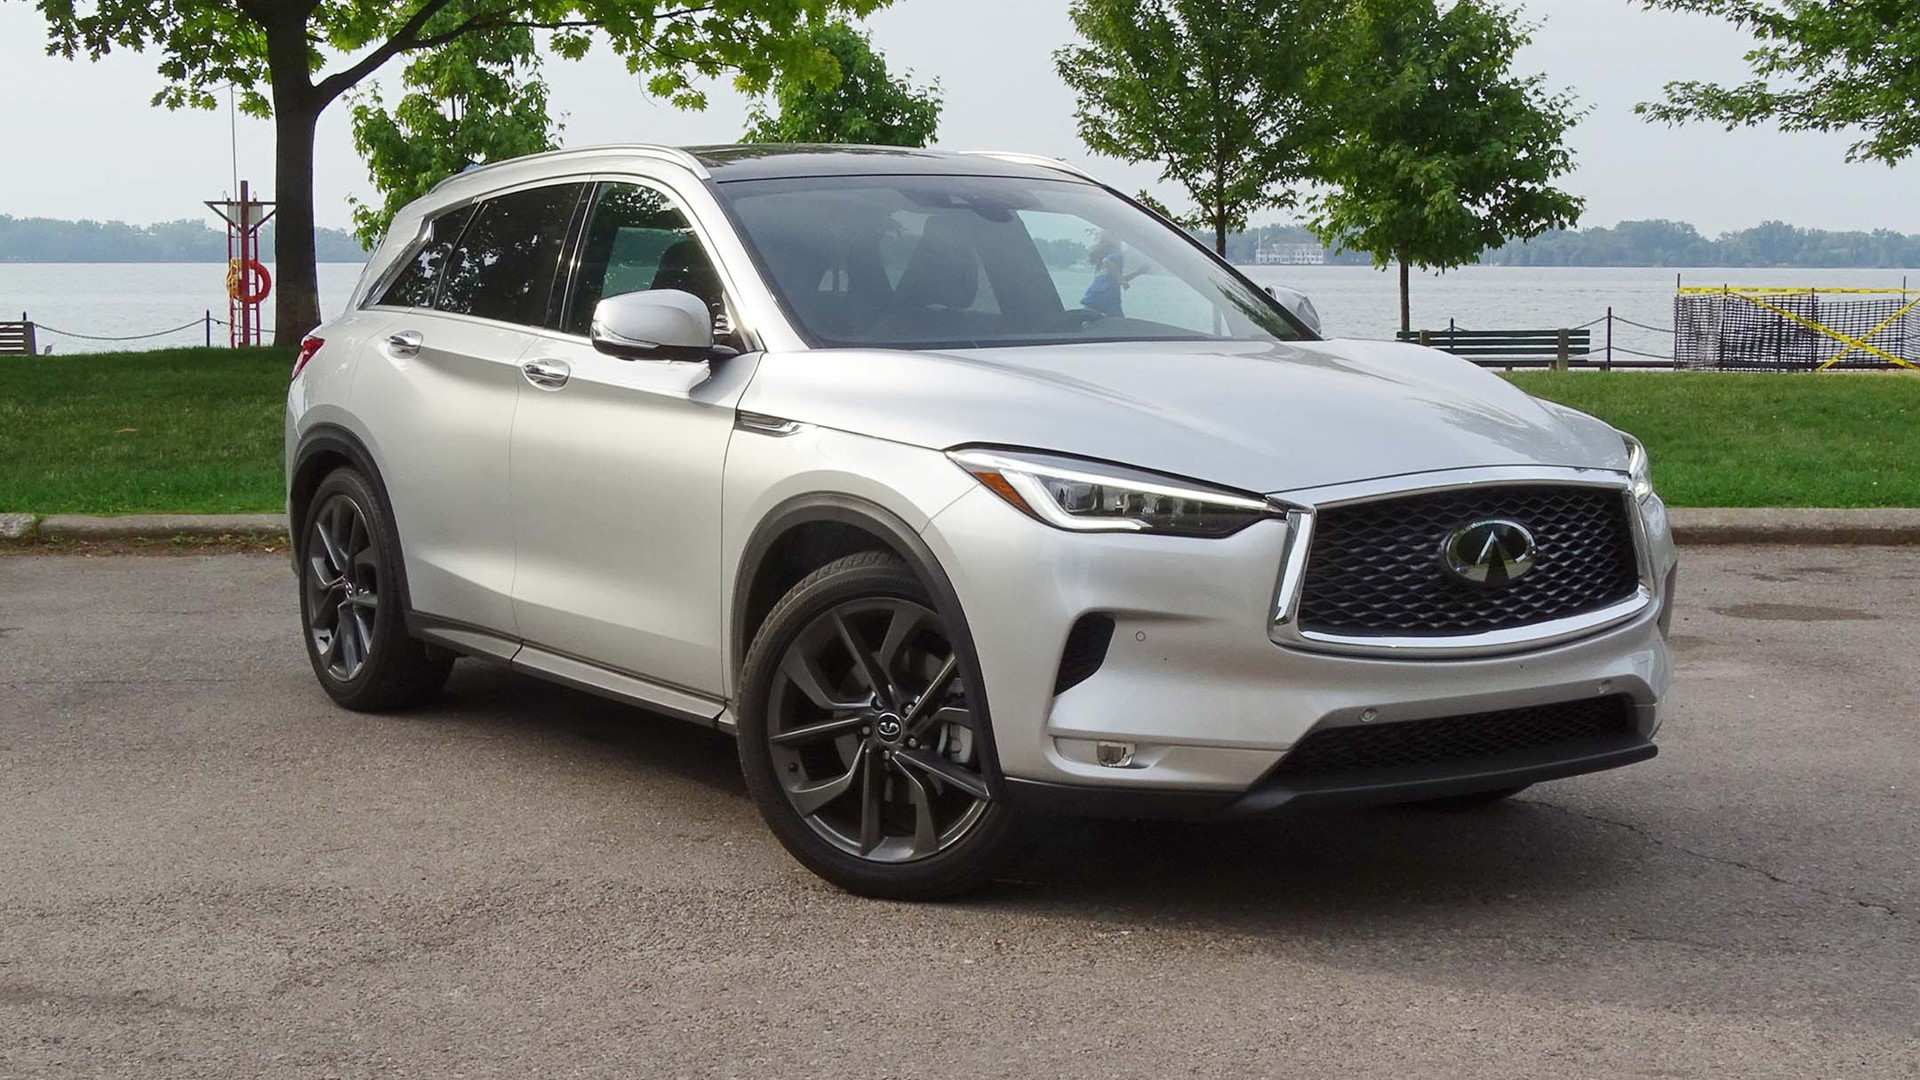 83 The 2019 Infiniti Qx50 Apple Carplay New Review with 2019 Infiniti Qx50 Apple Carplay